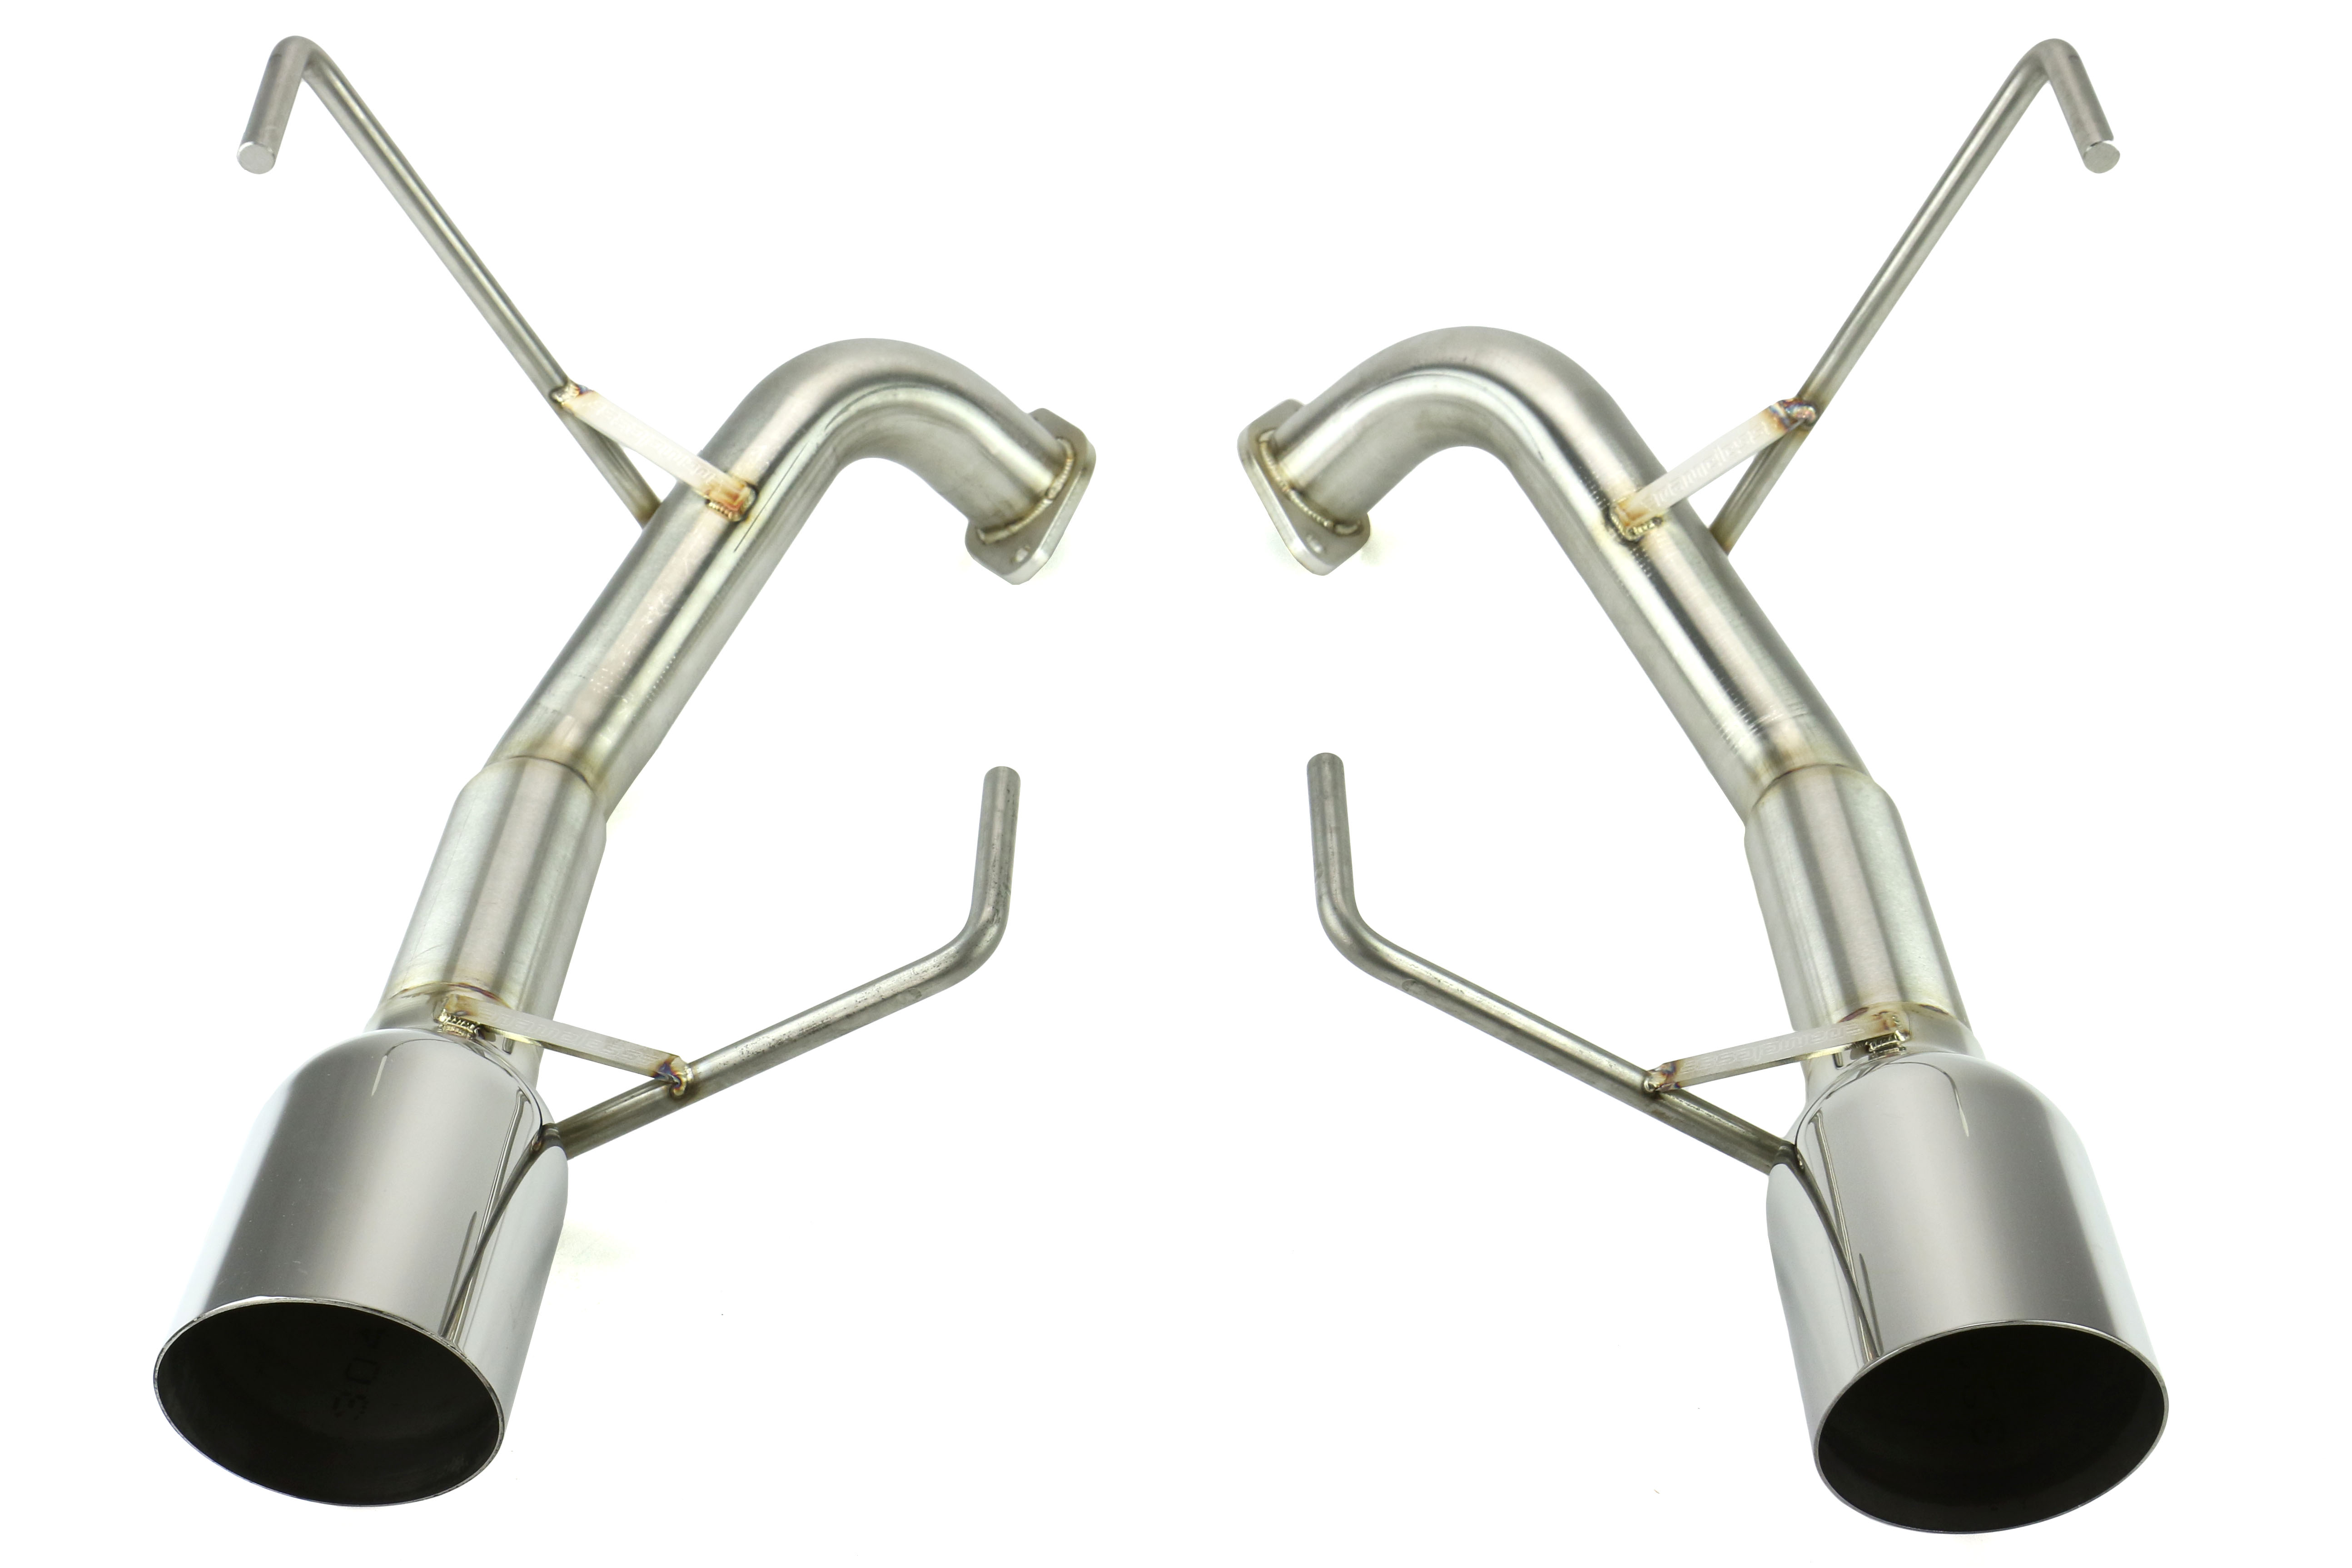 Nameless Performance Axleback Exhaust 4in Single Wall Tips